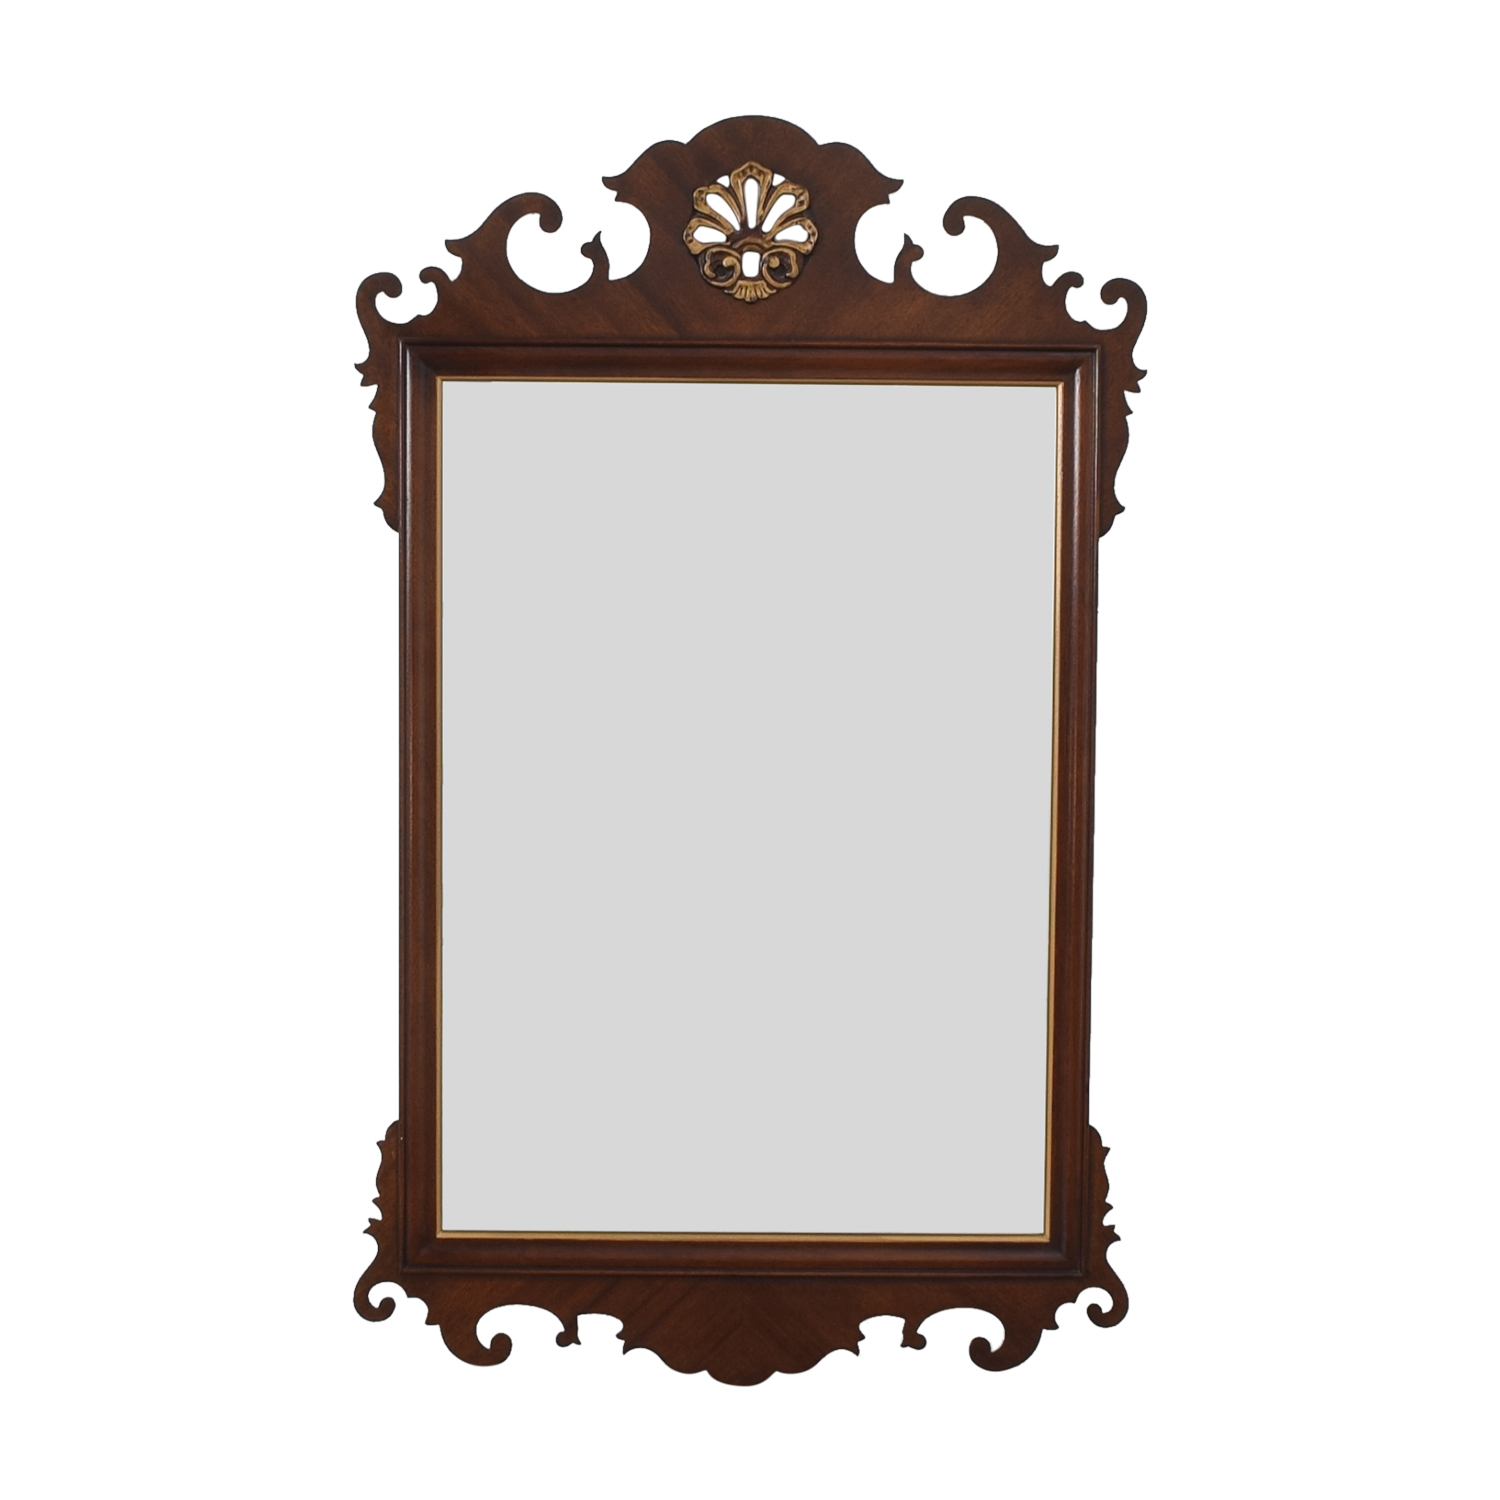 Drexel Drexel Chippendale Mirror used